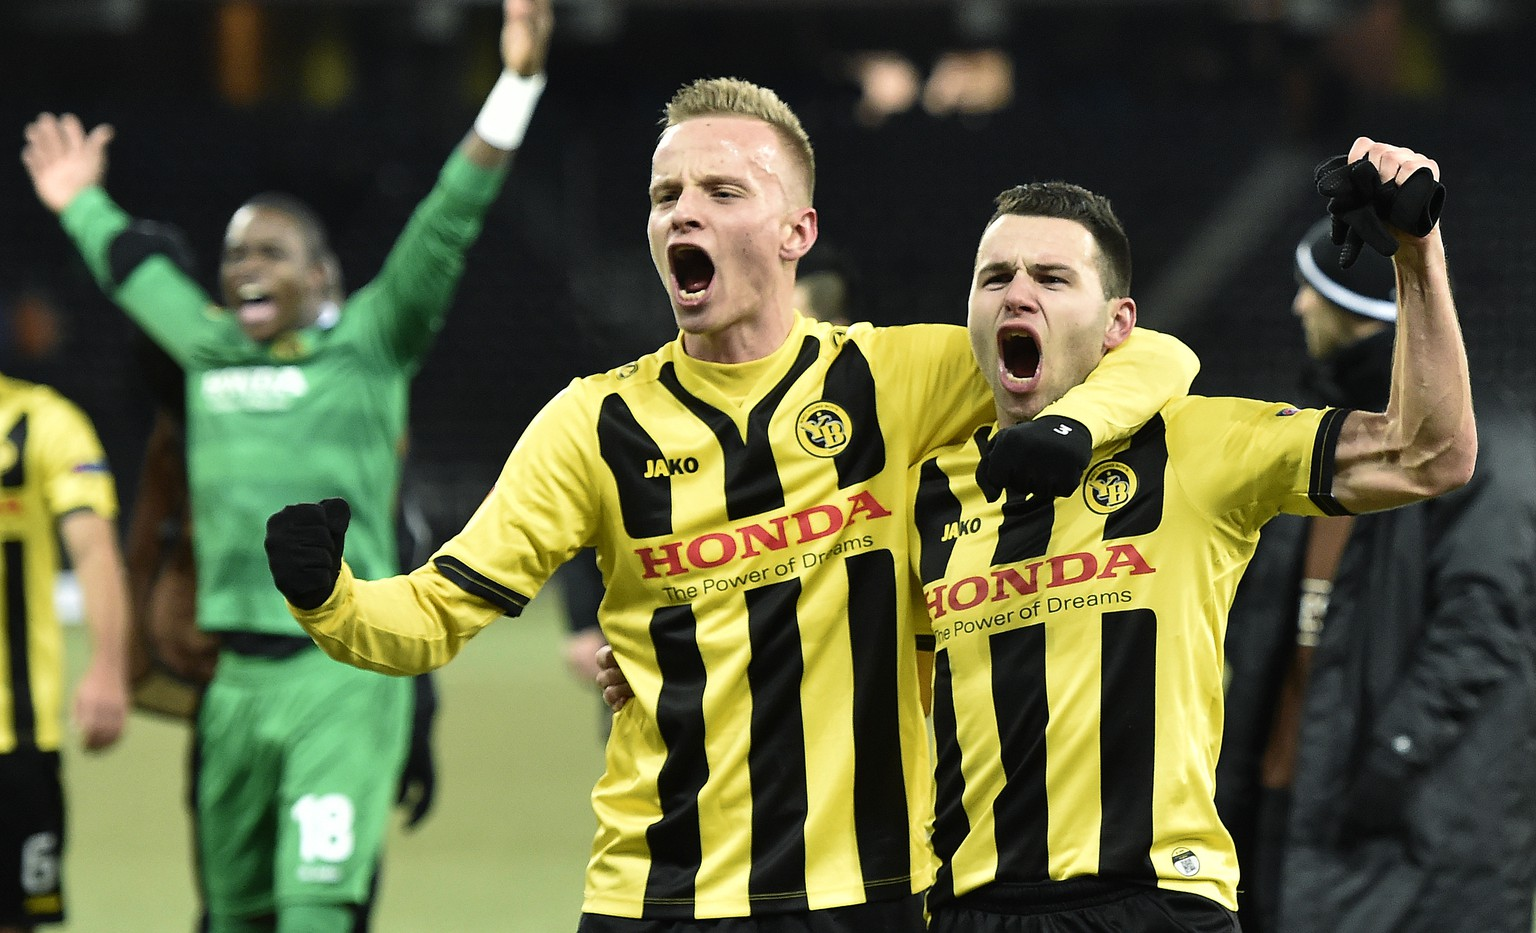 YB's Florent Hadergjonaj, left, and Renato Steffen celebrate their victory during their Europa League Group I stage match between Switzerland's Young Boys Bern and Czech Republic's AC Sparta Praha at the Stade de Suisse Stadium in Bern, Switzerland, Thursday, December 11, 2014. (KEYSTONE/Peter Schneider)